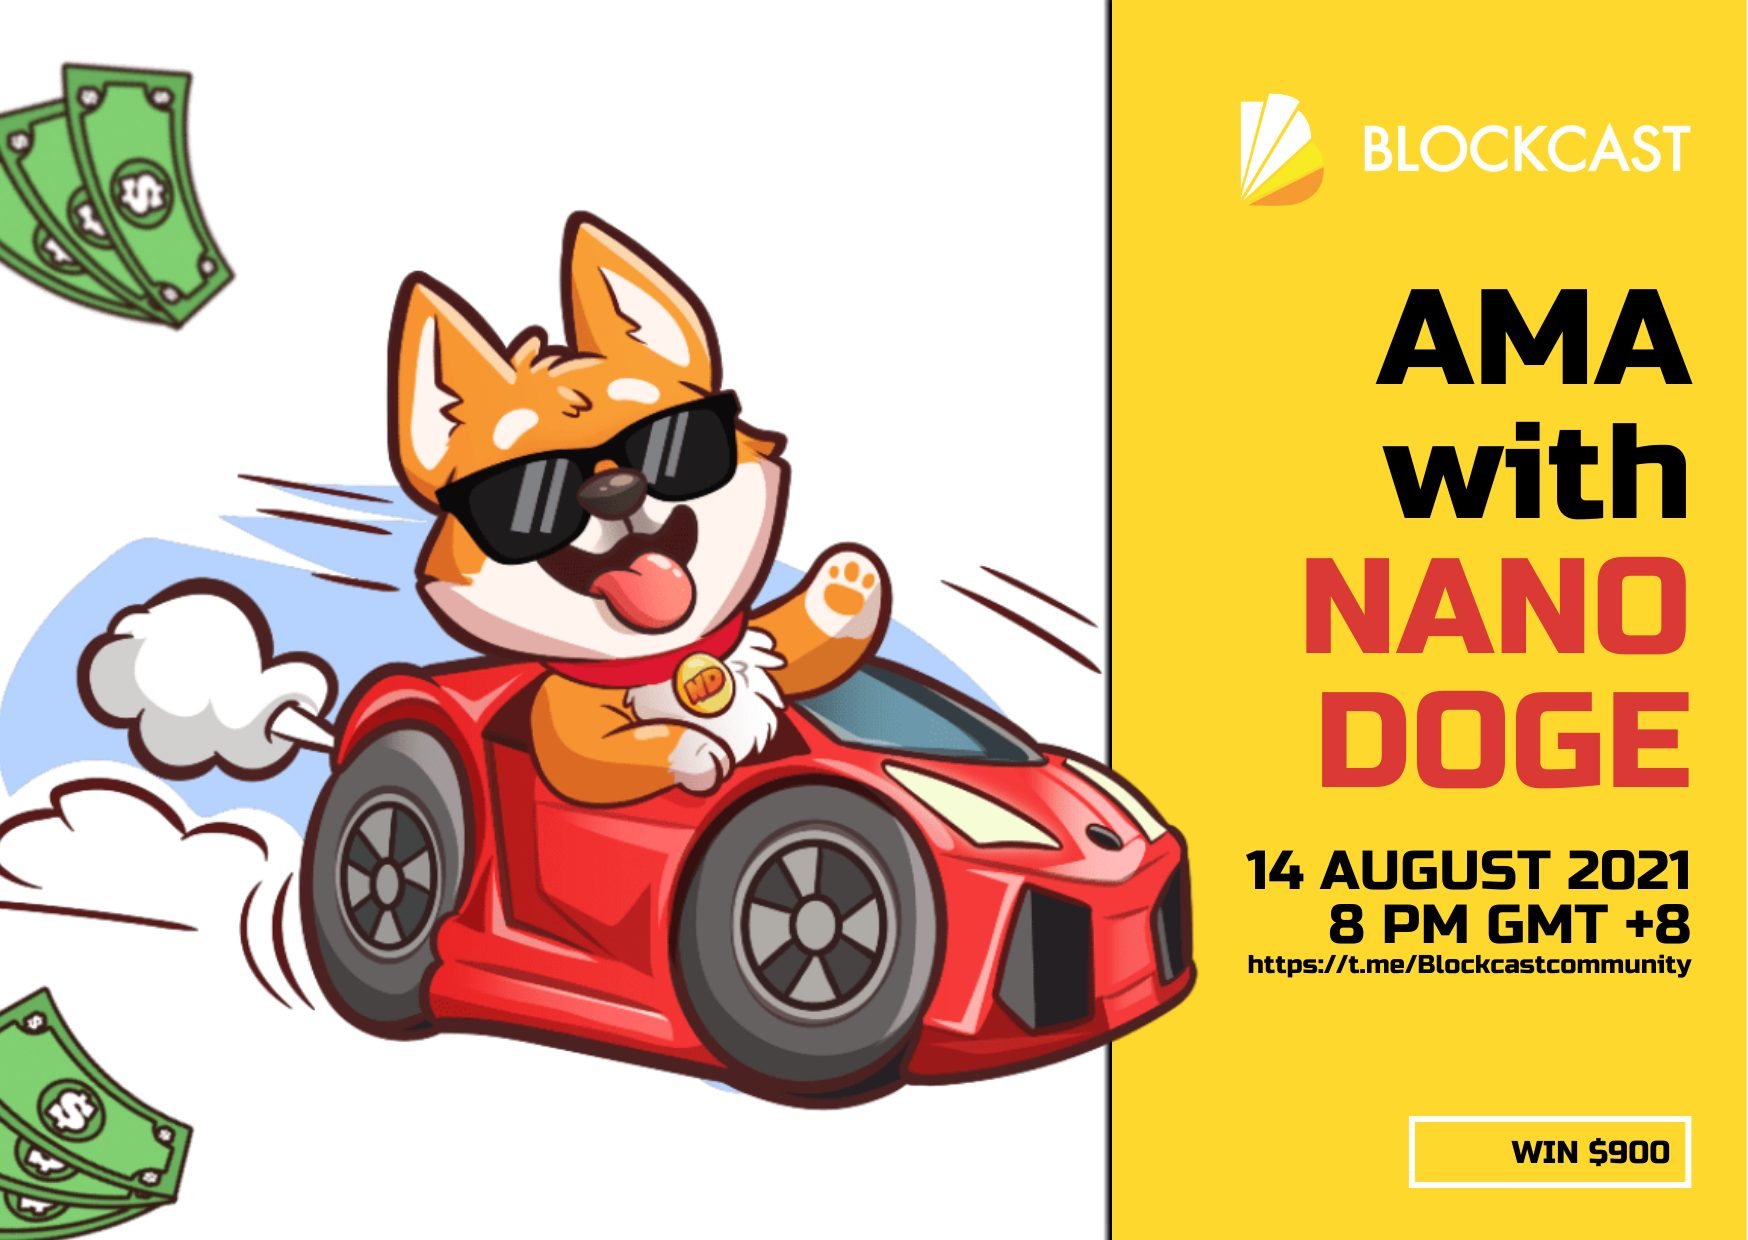 """Blockcast.cc Interviews Nano DogeCoin """"The new token that allows investors  to earn USD Tether while helping to save dogs worldwide"""" • Blockcast.cc-  News on Blockchain, DLT, Cryptocurrency"""